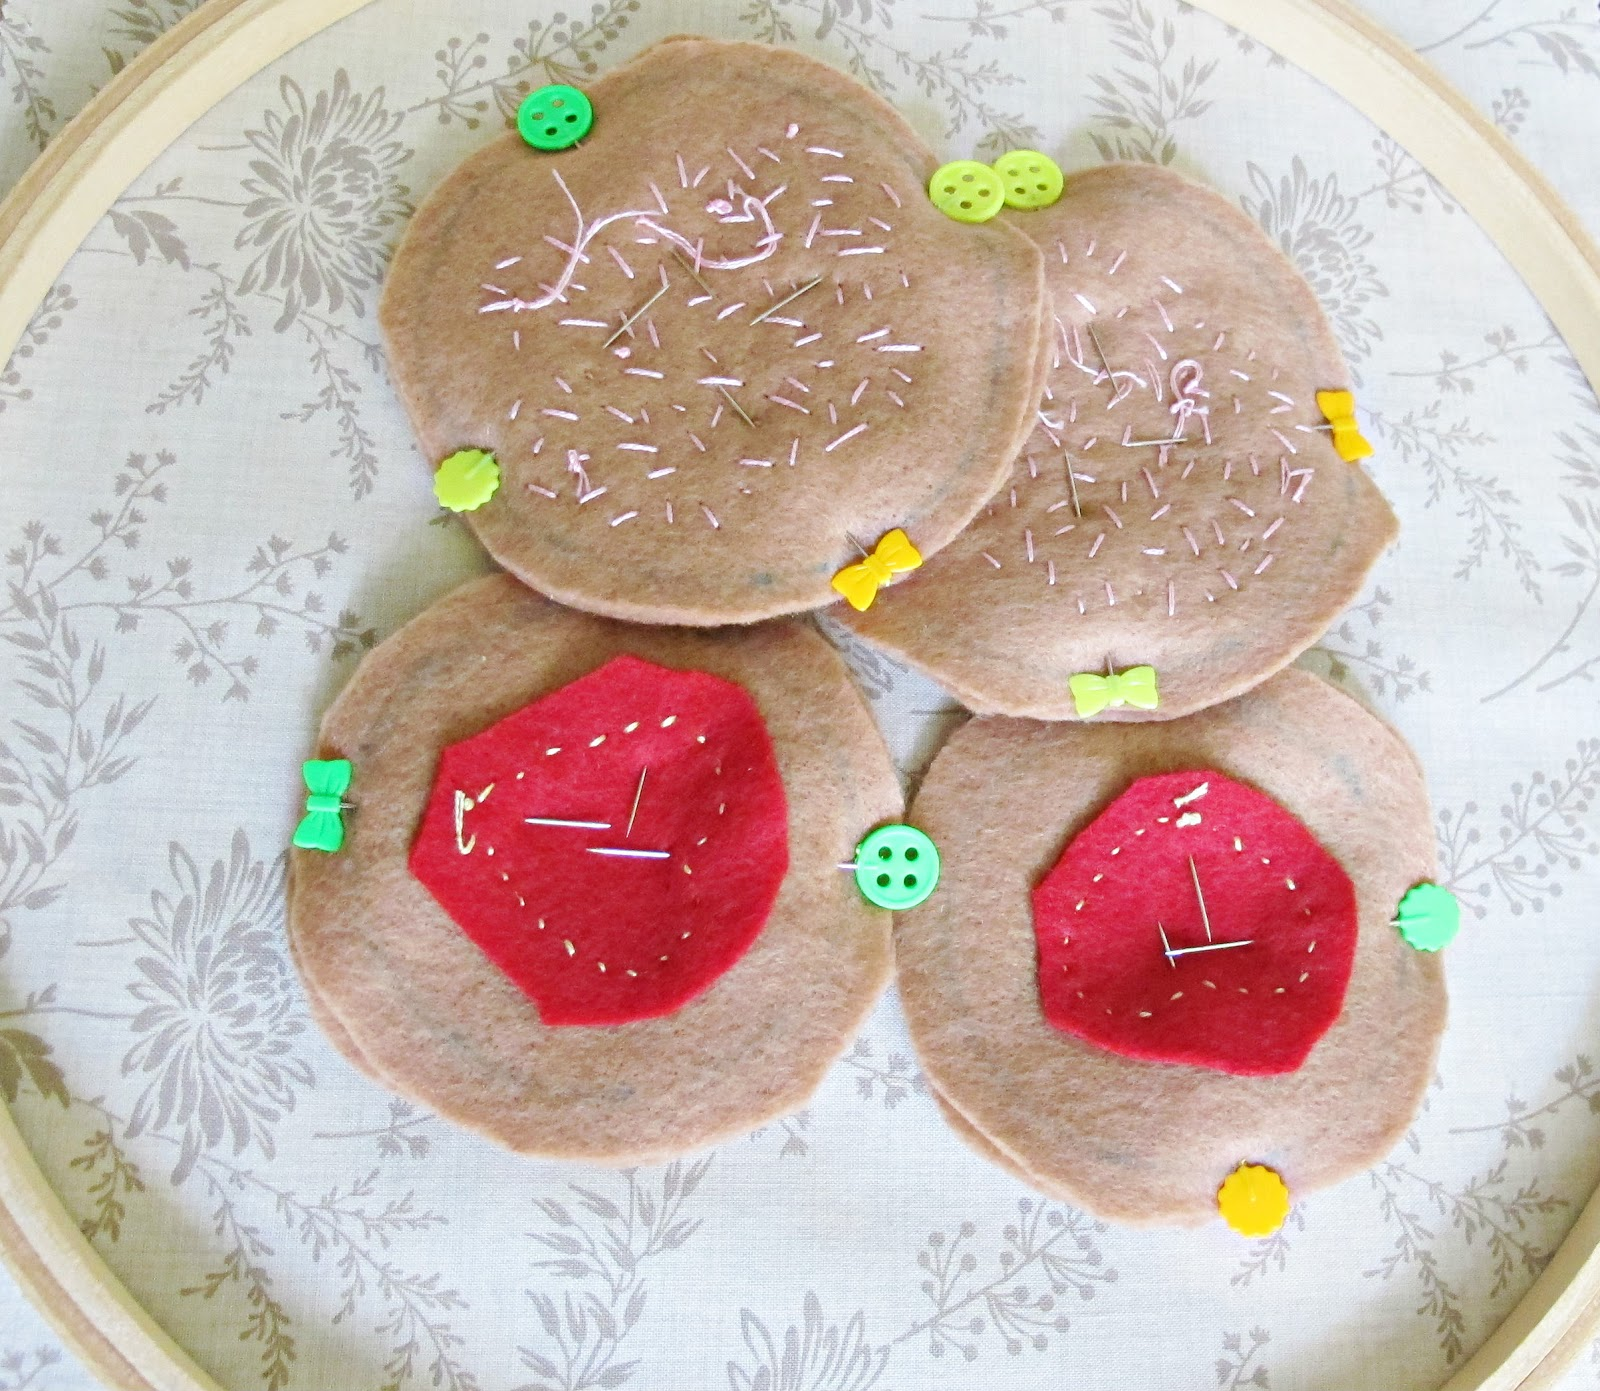 image felt food toys biscuits cookies iced jam